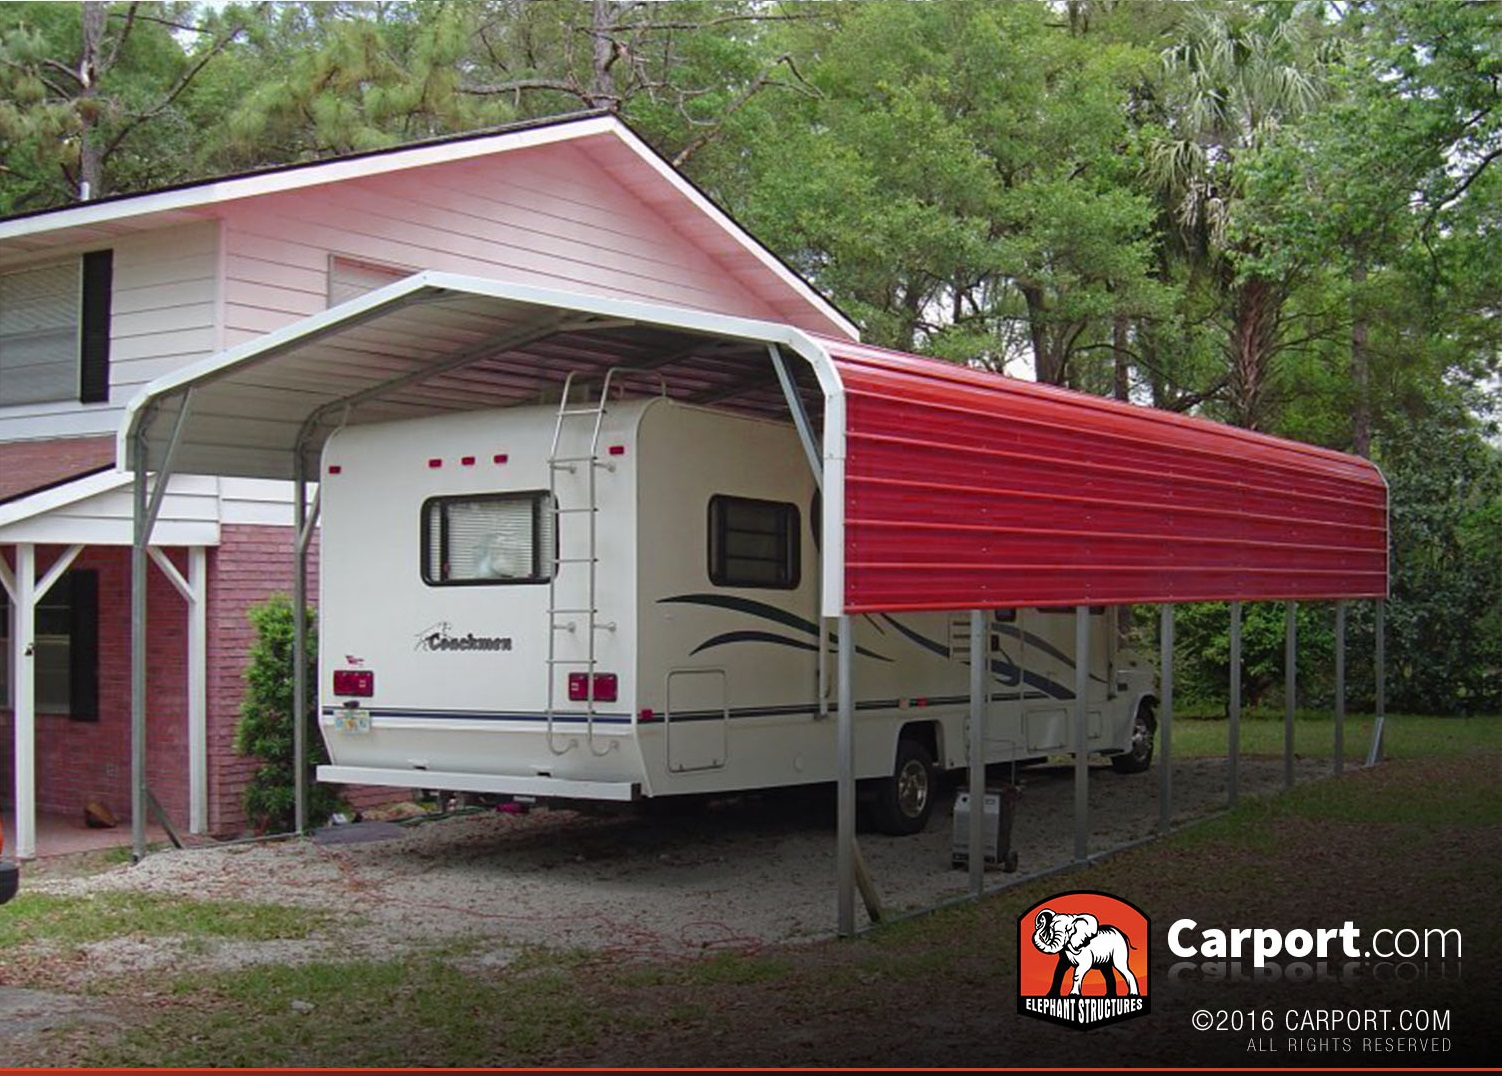 RV Carport 12\' x 36\' Metal Building | Shop Online Today!